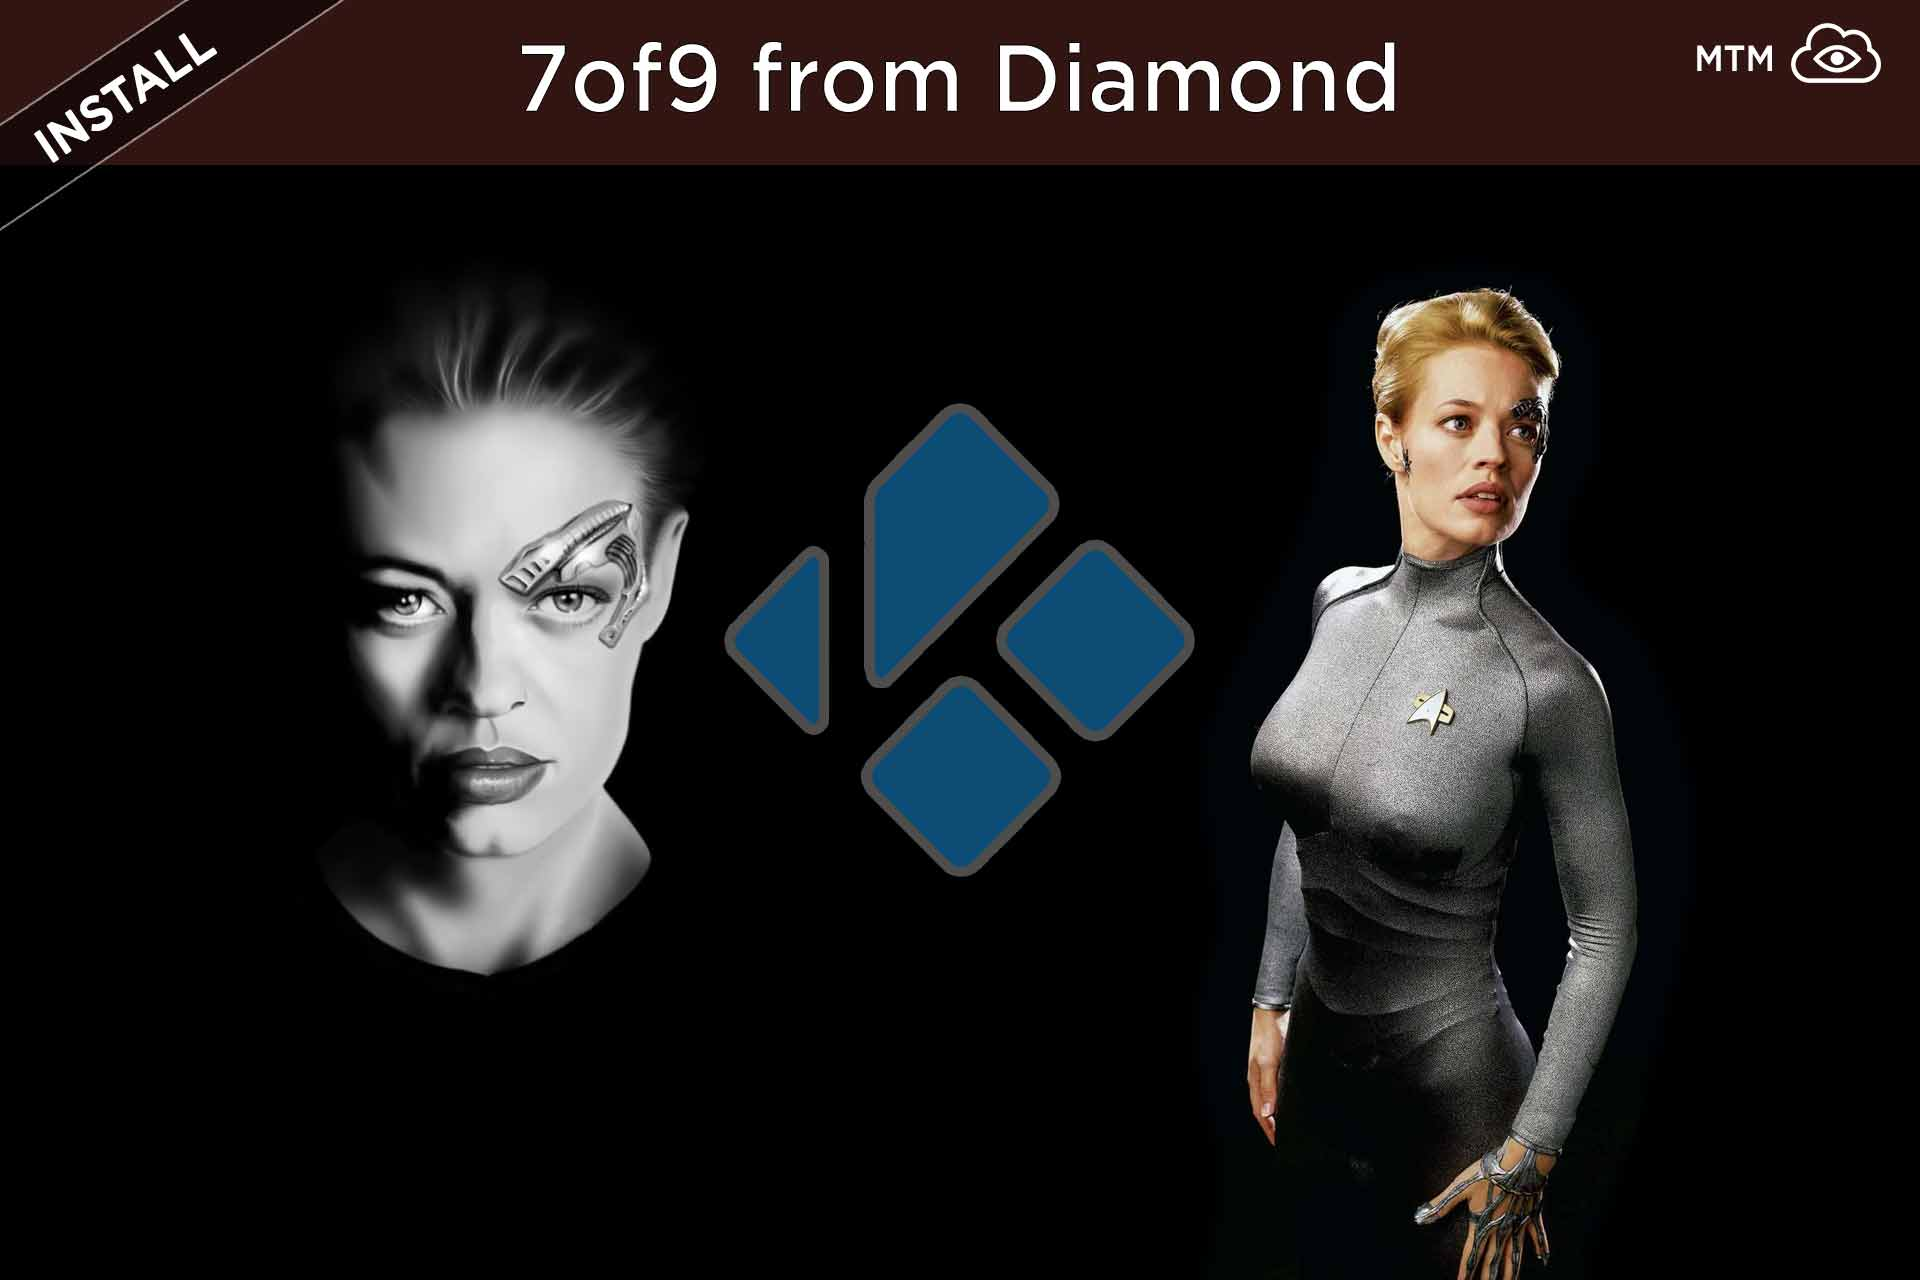 18 Adult Movies Torrent install 7of9 kodi addon from diamond wizard repo [+password]